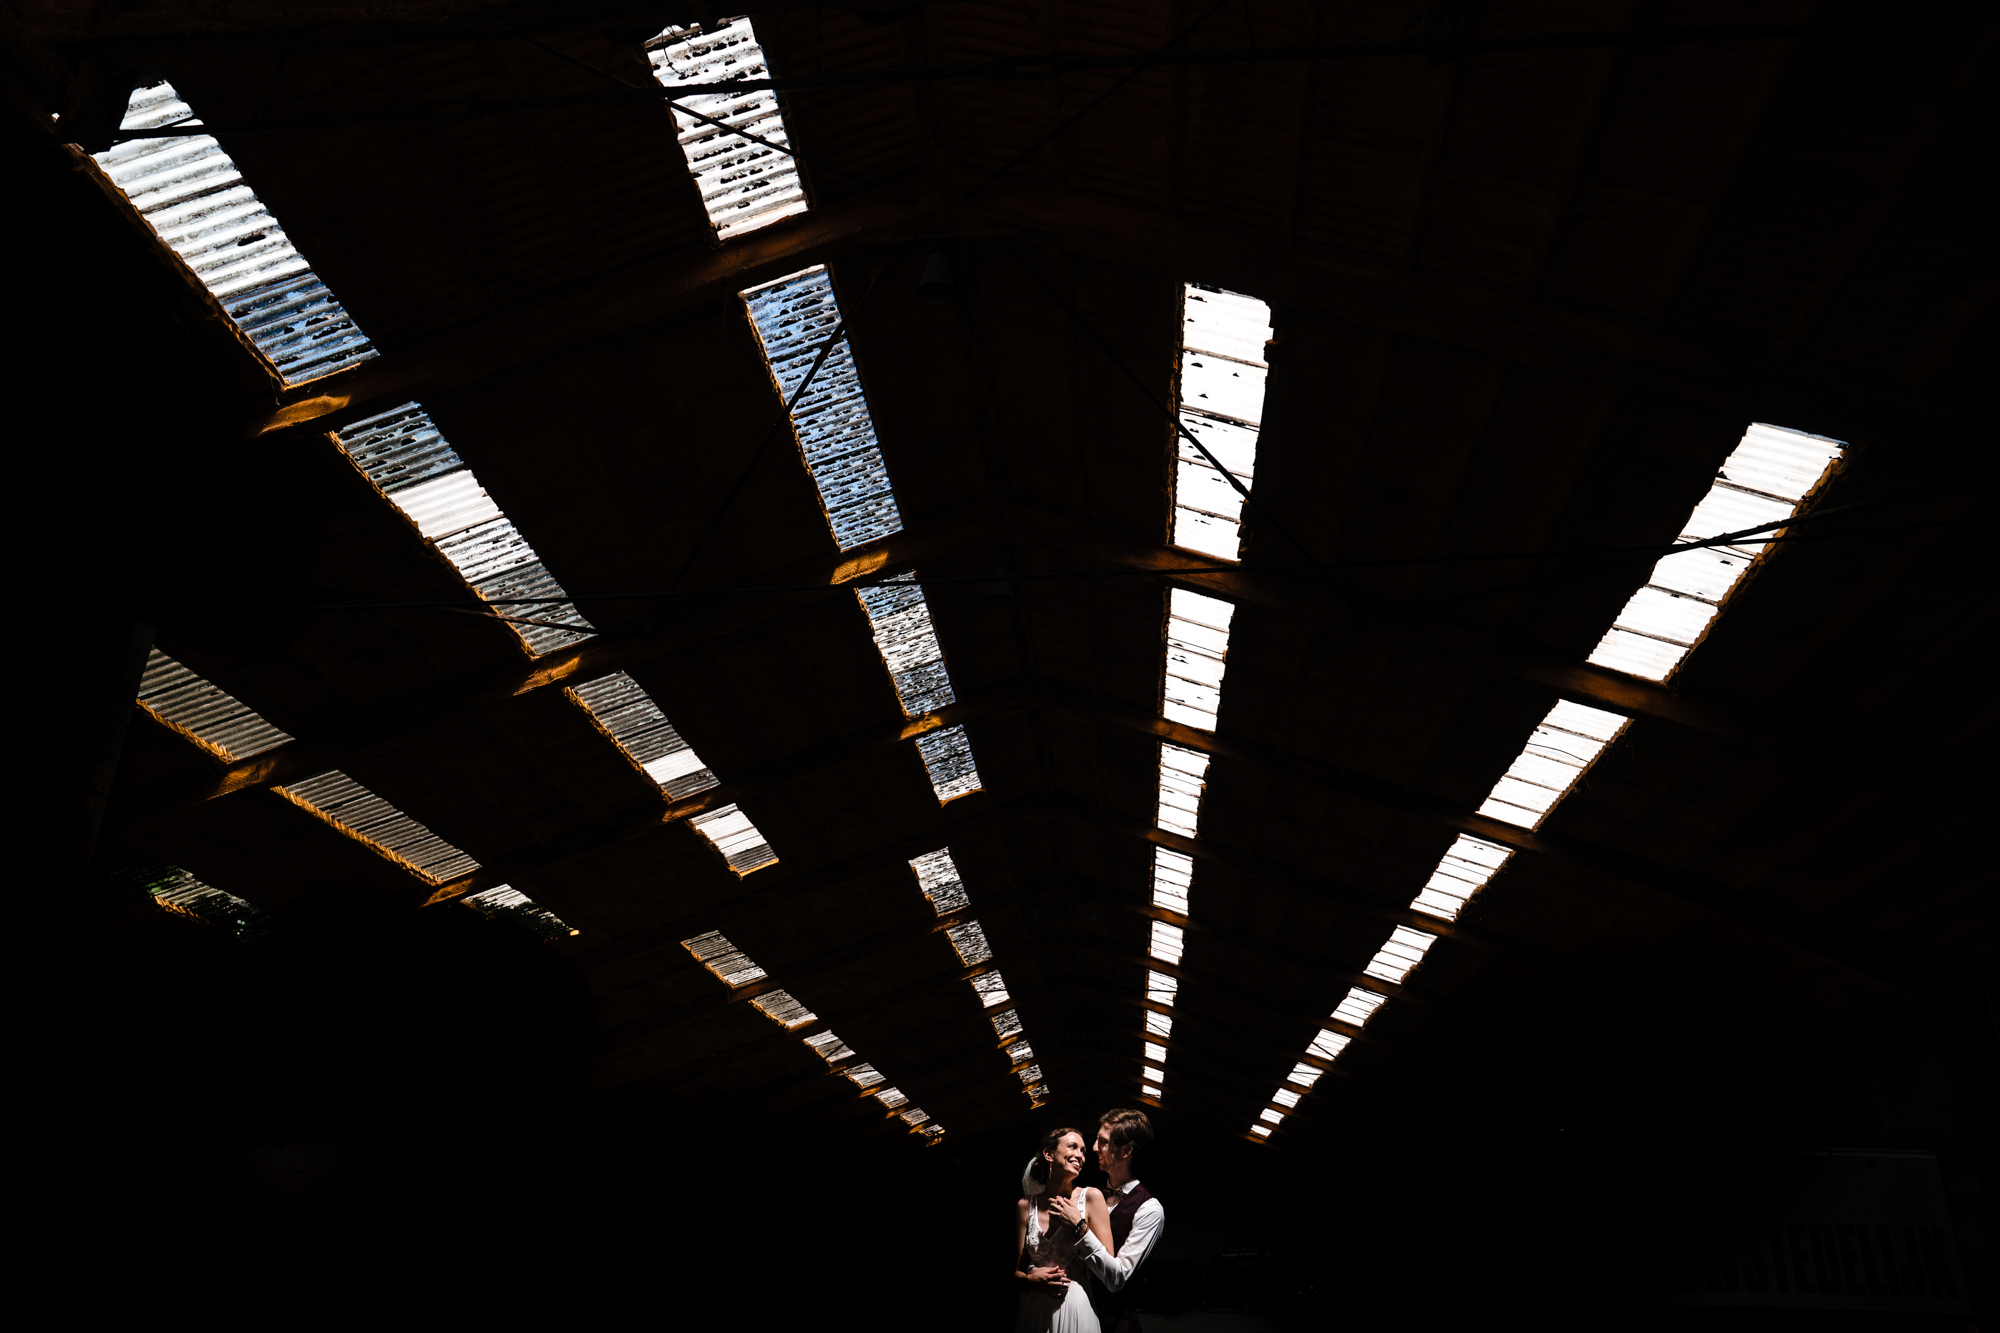 Wedding couple under skylight photo by Yves Schepers